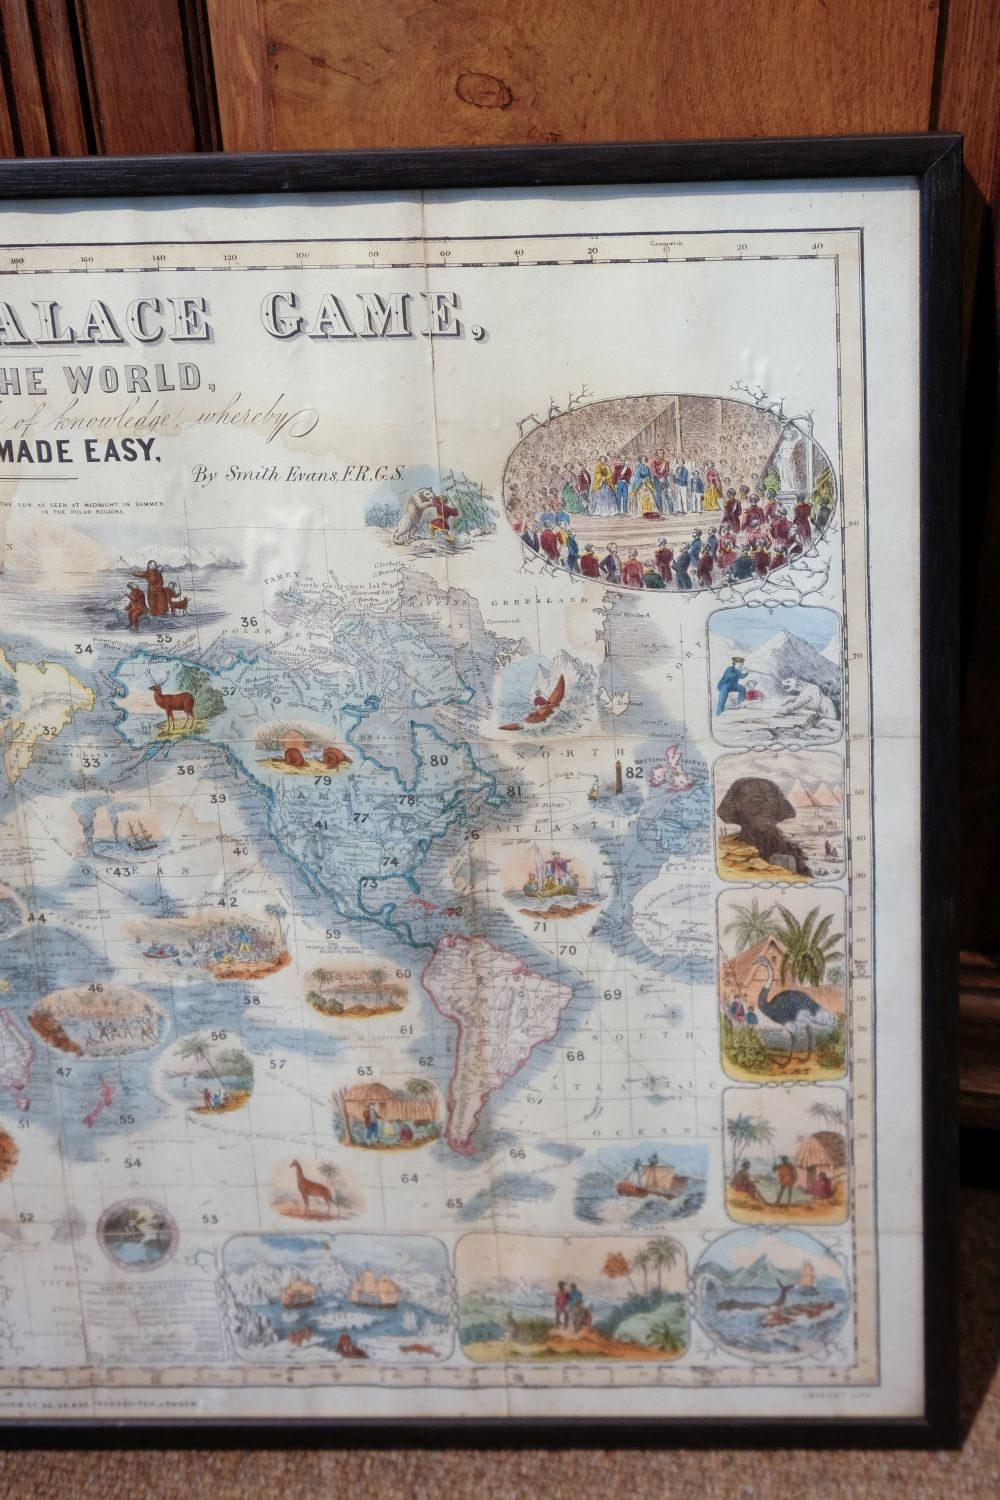 * World Map Board Game. The Crystal Palace Game, published by Alfred Davis & Co., [1855?] - Image 5 of 5